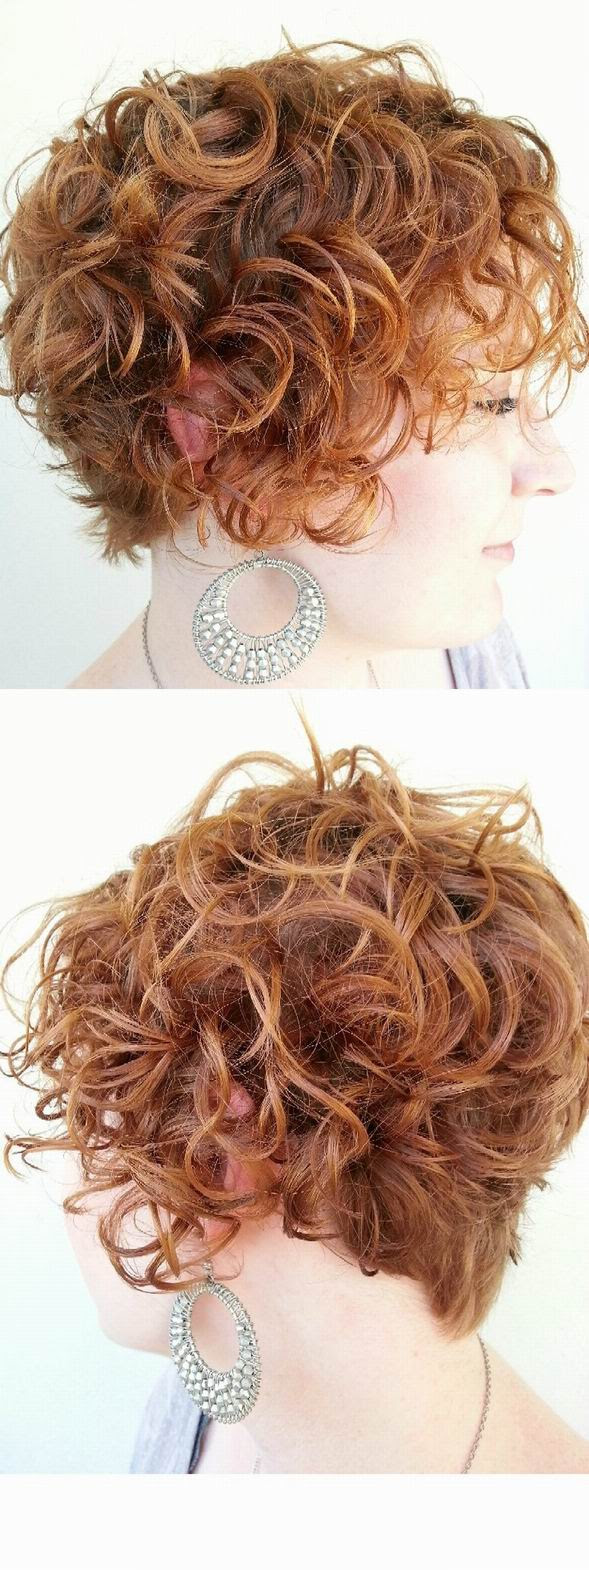 22+ Popular Concept Easy Hairstyles For Frizzy Hair